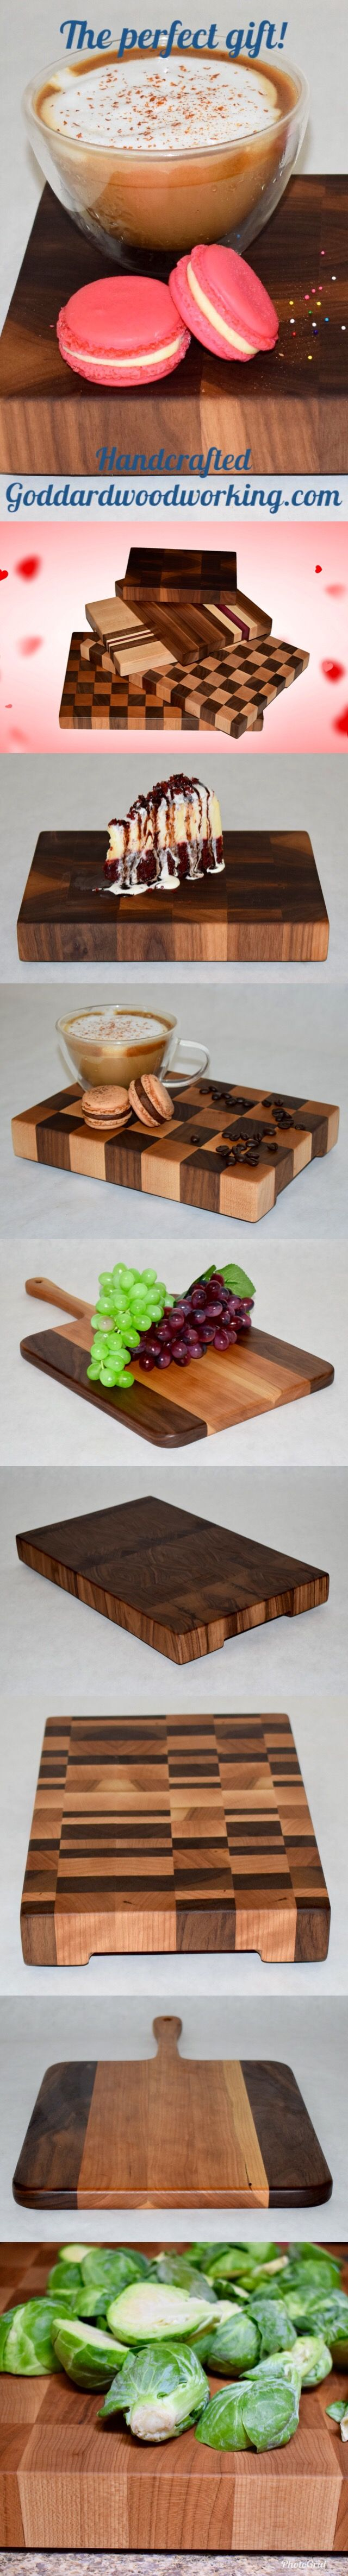 Make any party appetizer and dessert stand out when displayed on a handcrafted end grain cutting board! These boards not only serve a purpose, but also provide a animated eye-catching piece of décor for your home. #wine #winetime #handcrafted #cuttingboard #cooking #handmade #woodworking #foodie #partydecor #gifts #giftguide #giftsforher #amazing #giftideas #cook #chef #house #kitchendesign #wedding #weddinggift #dinnerparty #partytime #kitchenideas #homedecor #party #partyfood…